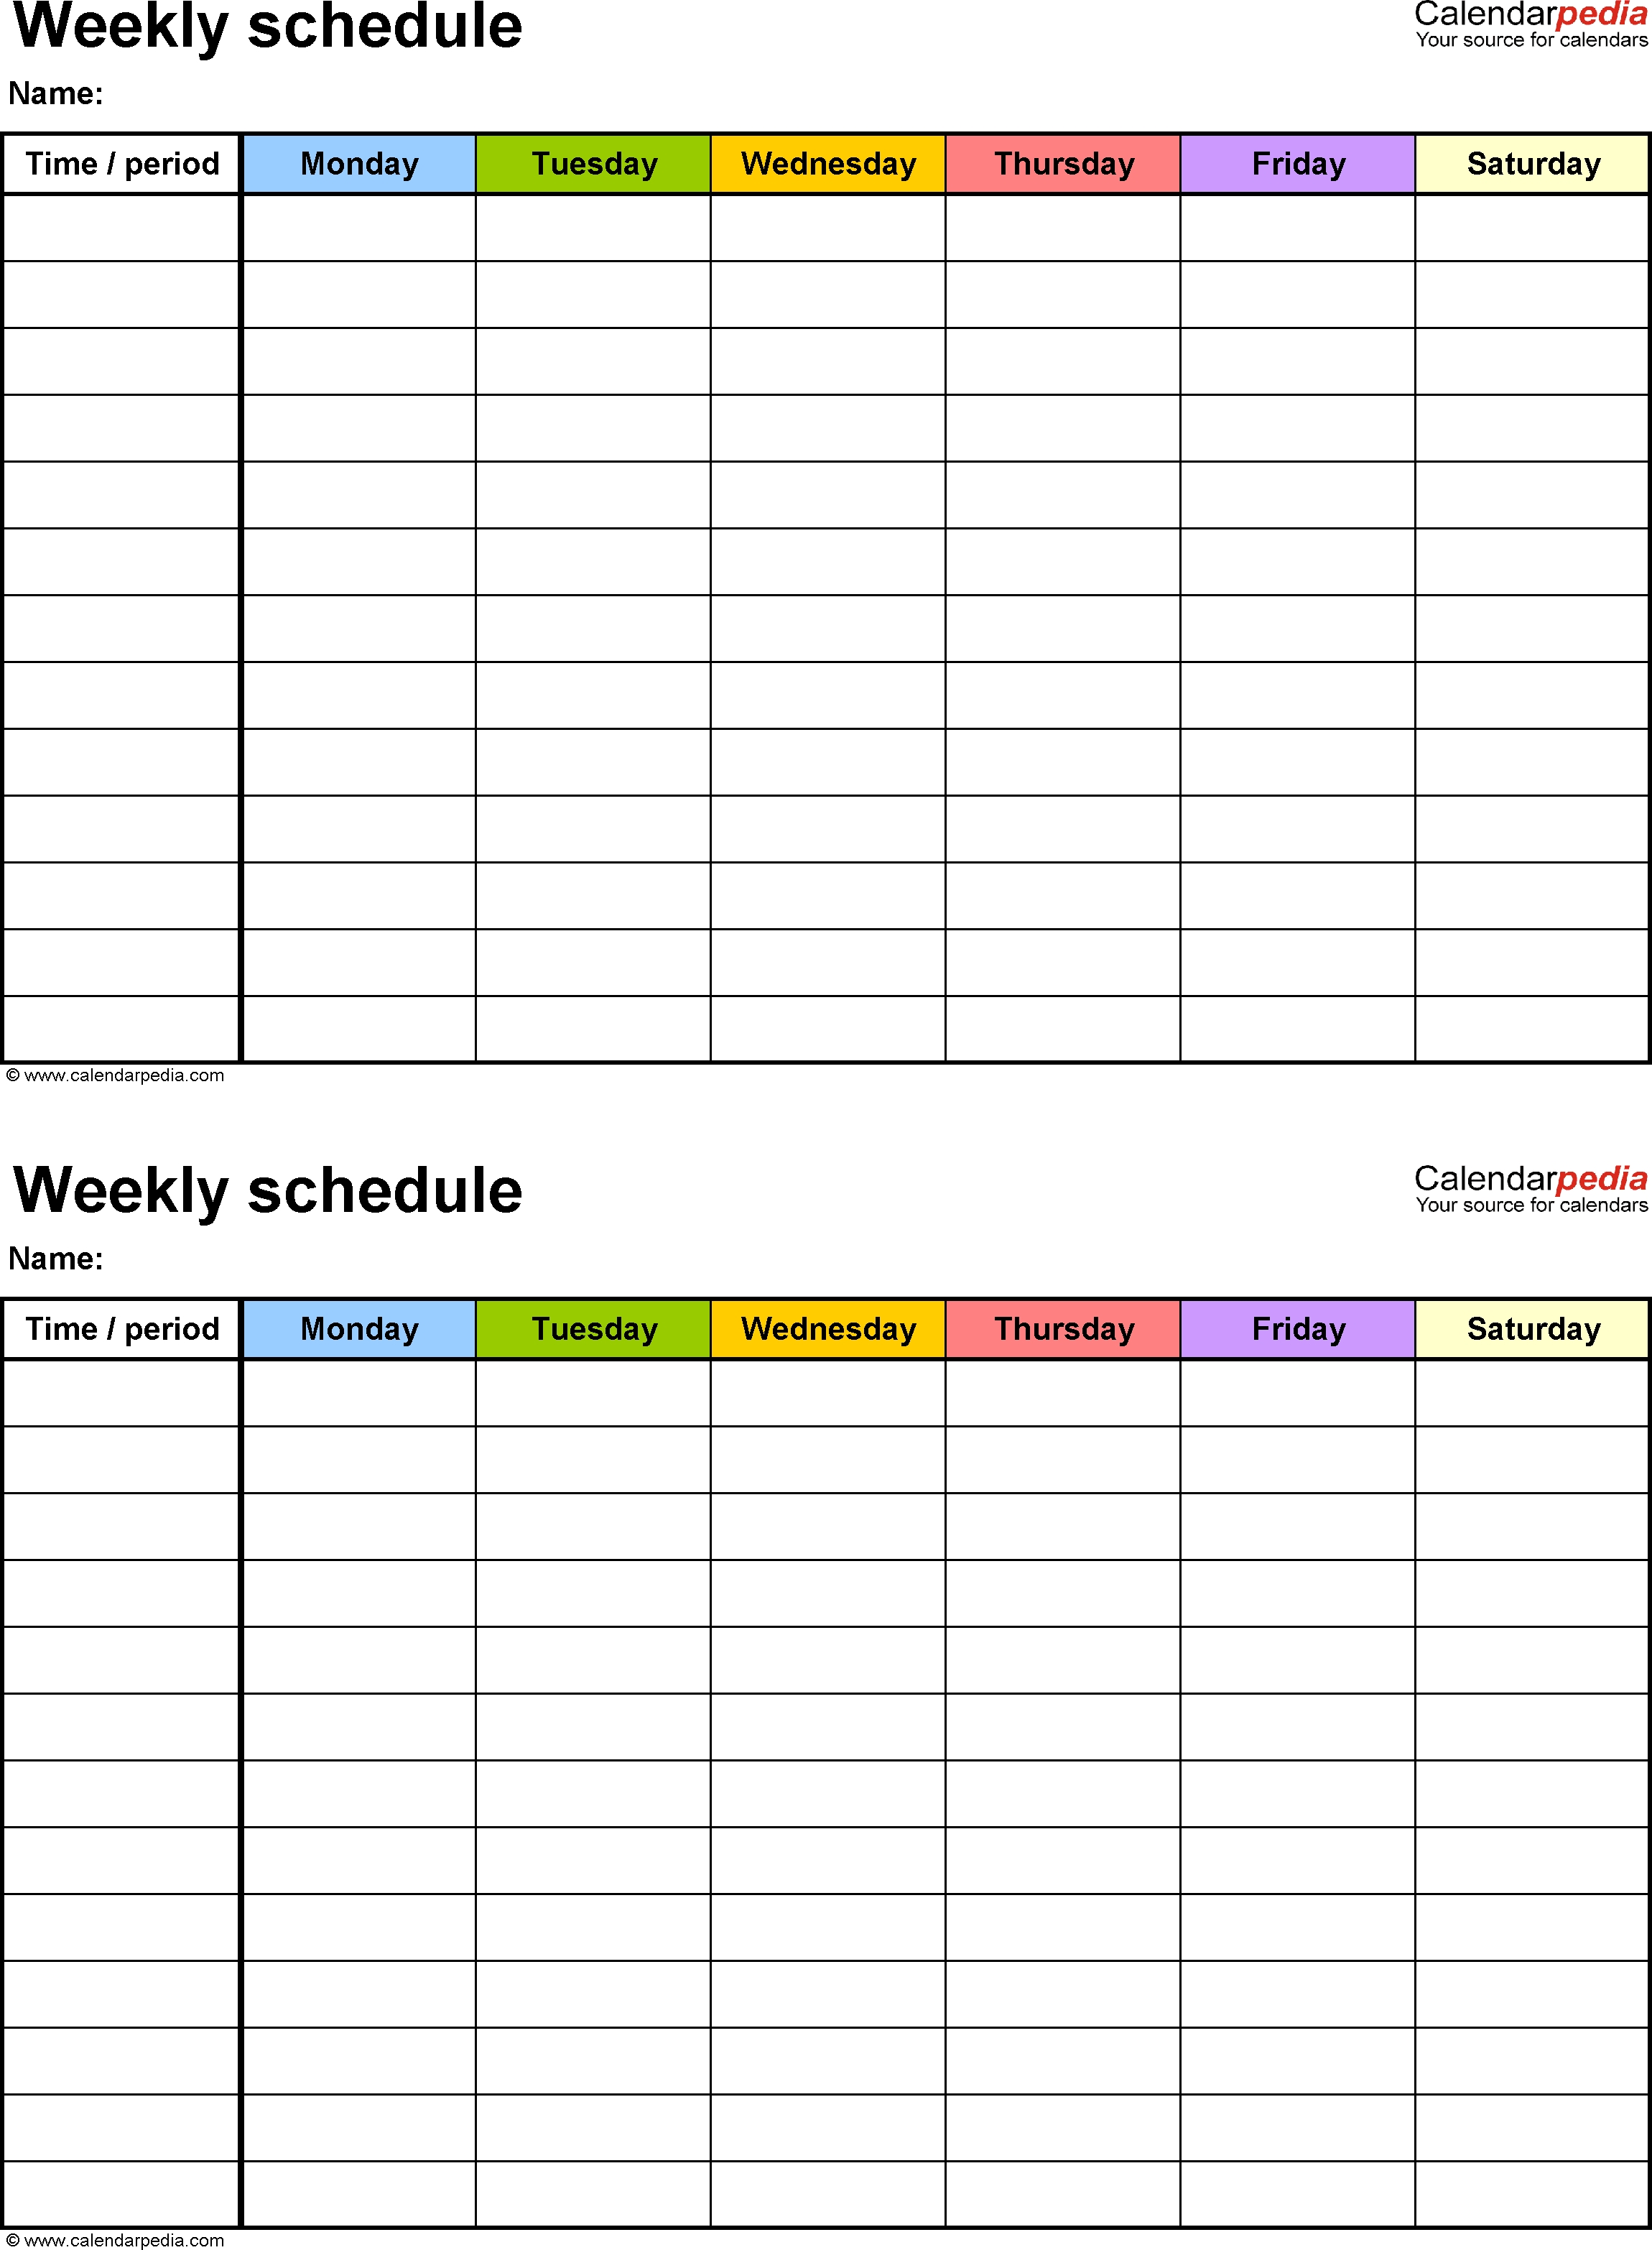 Free Weekly Schedule Templates For Word - 18 Templates for 2 Week Calendar Printable Free